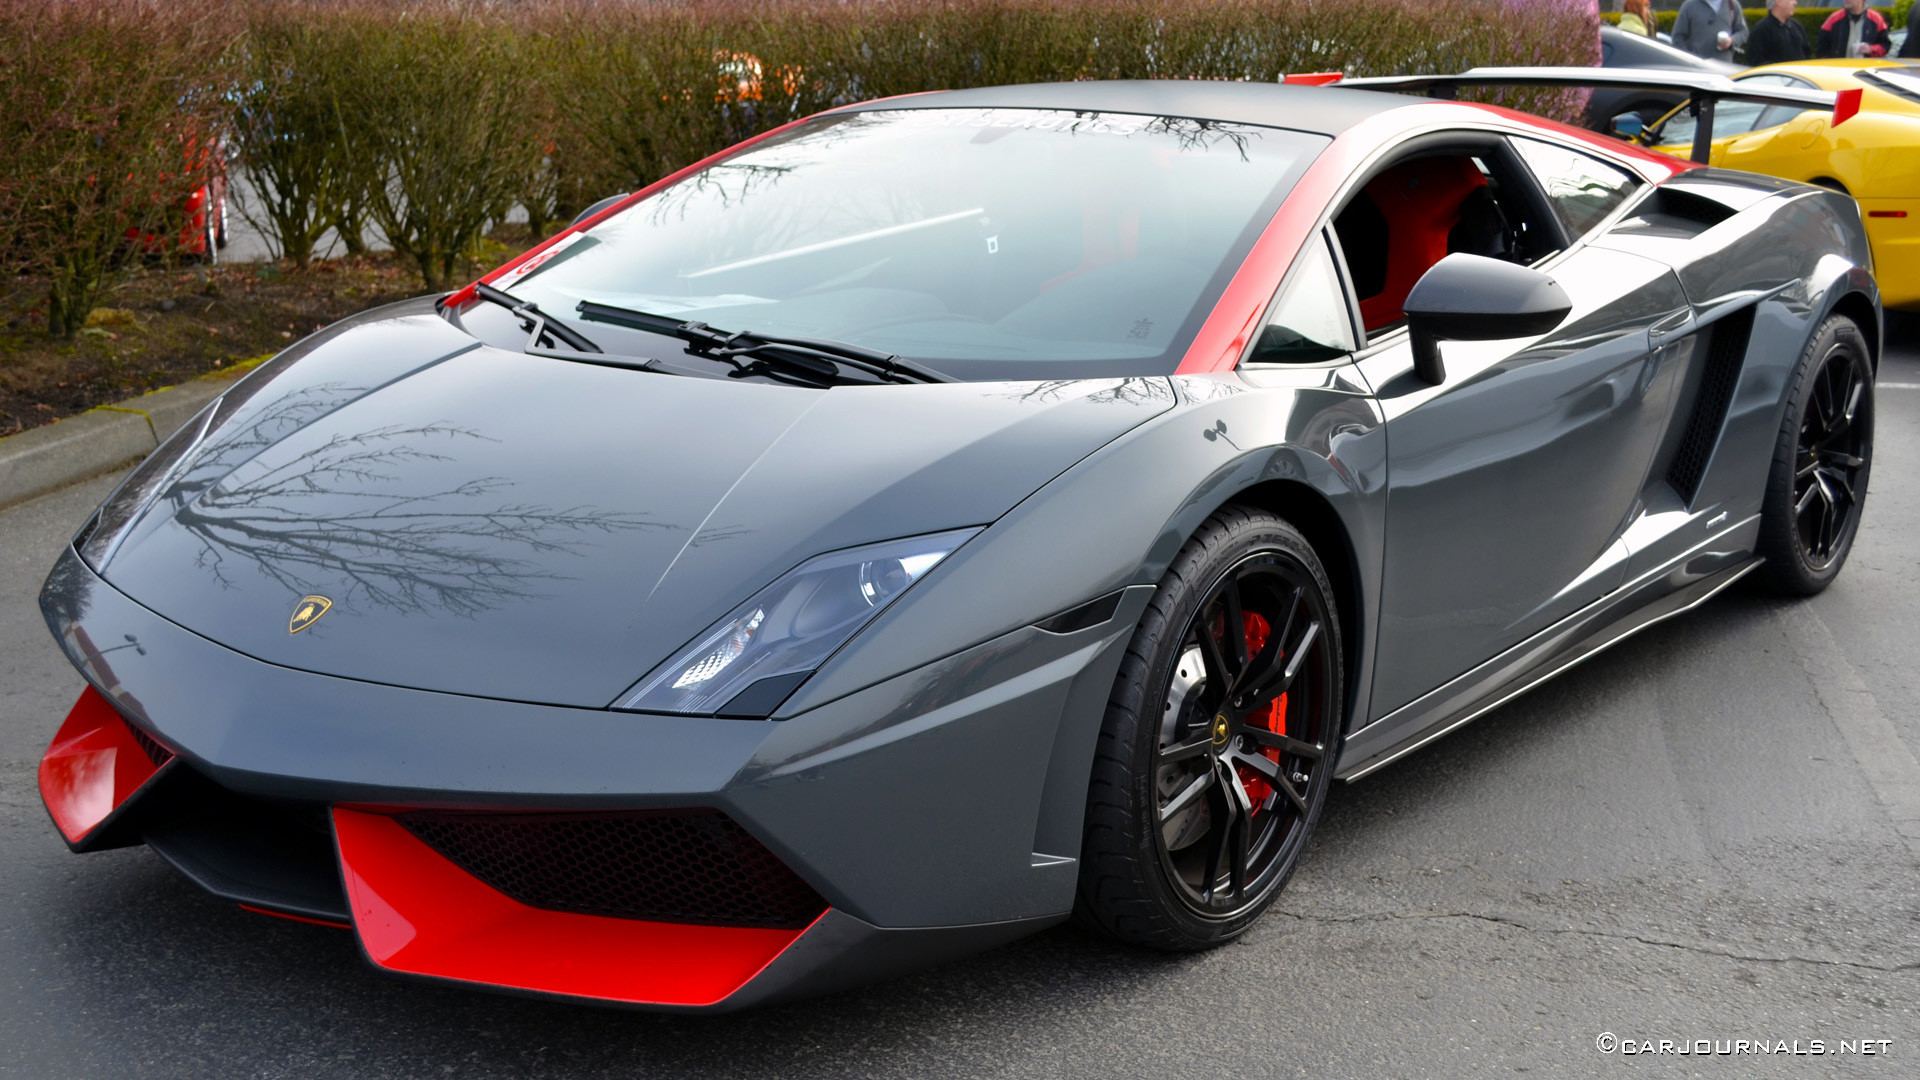 1920x1080 HD Car Wallpapers - Lamborghini Gallardo 560 - Car Journals